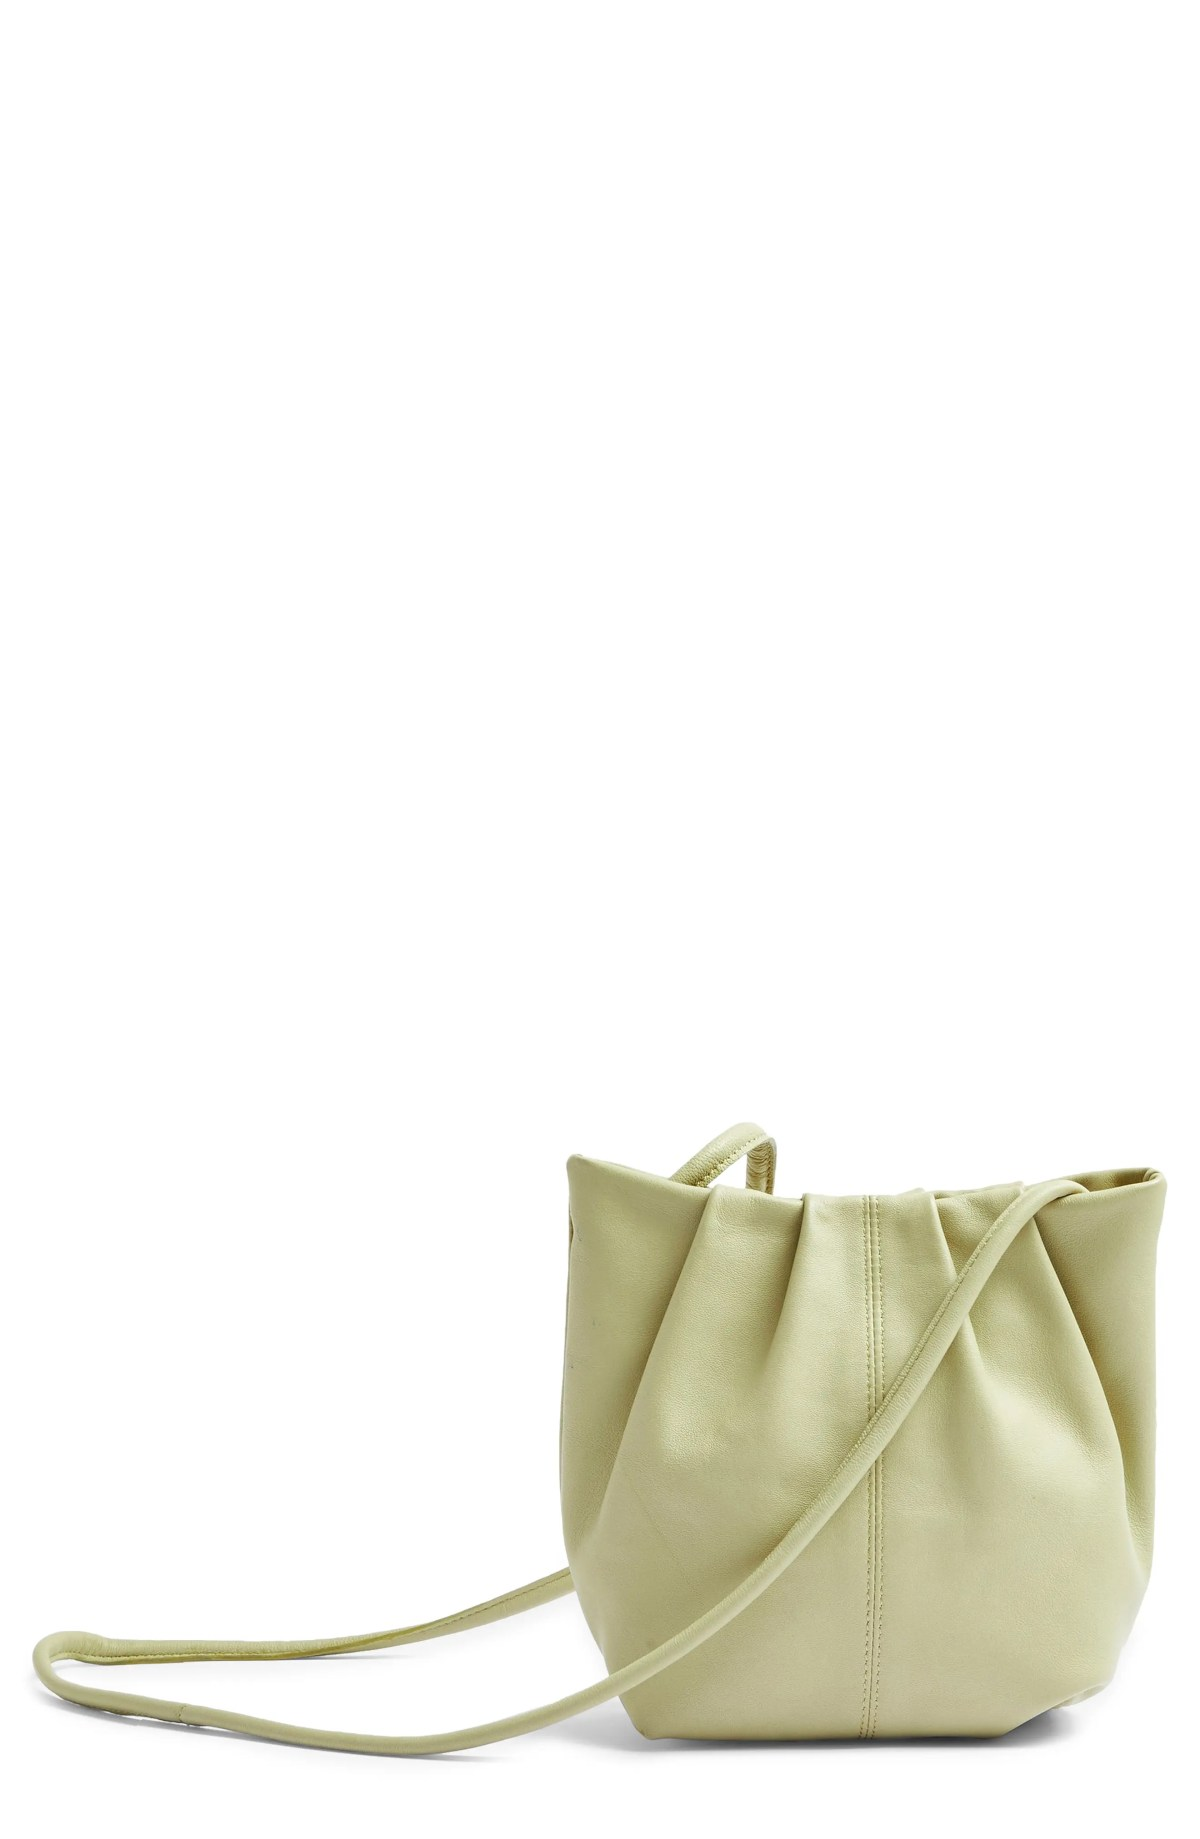 TOPSHOP Leather Bucket Bag, Main, color, GREEN